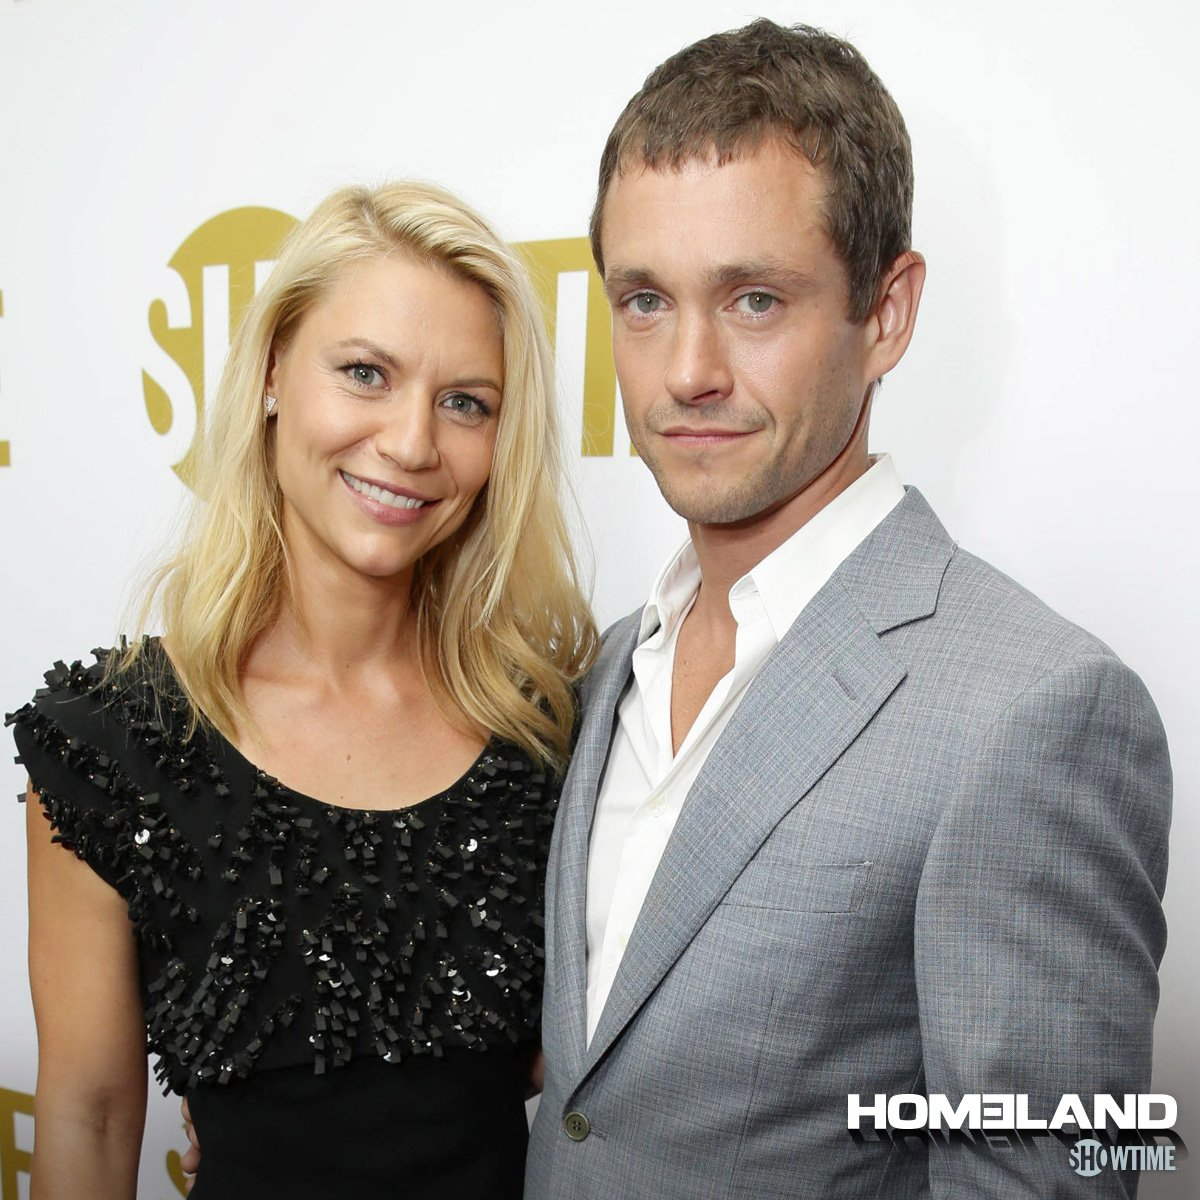 Fabulous Homeland On Showtime Sho Homeland Twitter Home Interior And Landscaping Pimpapssignezvosmurscom